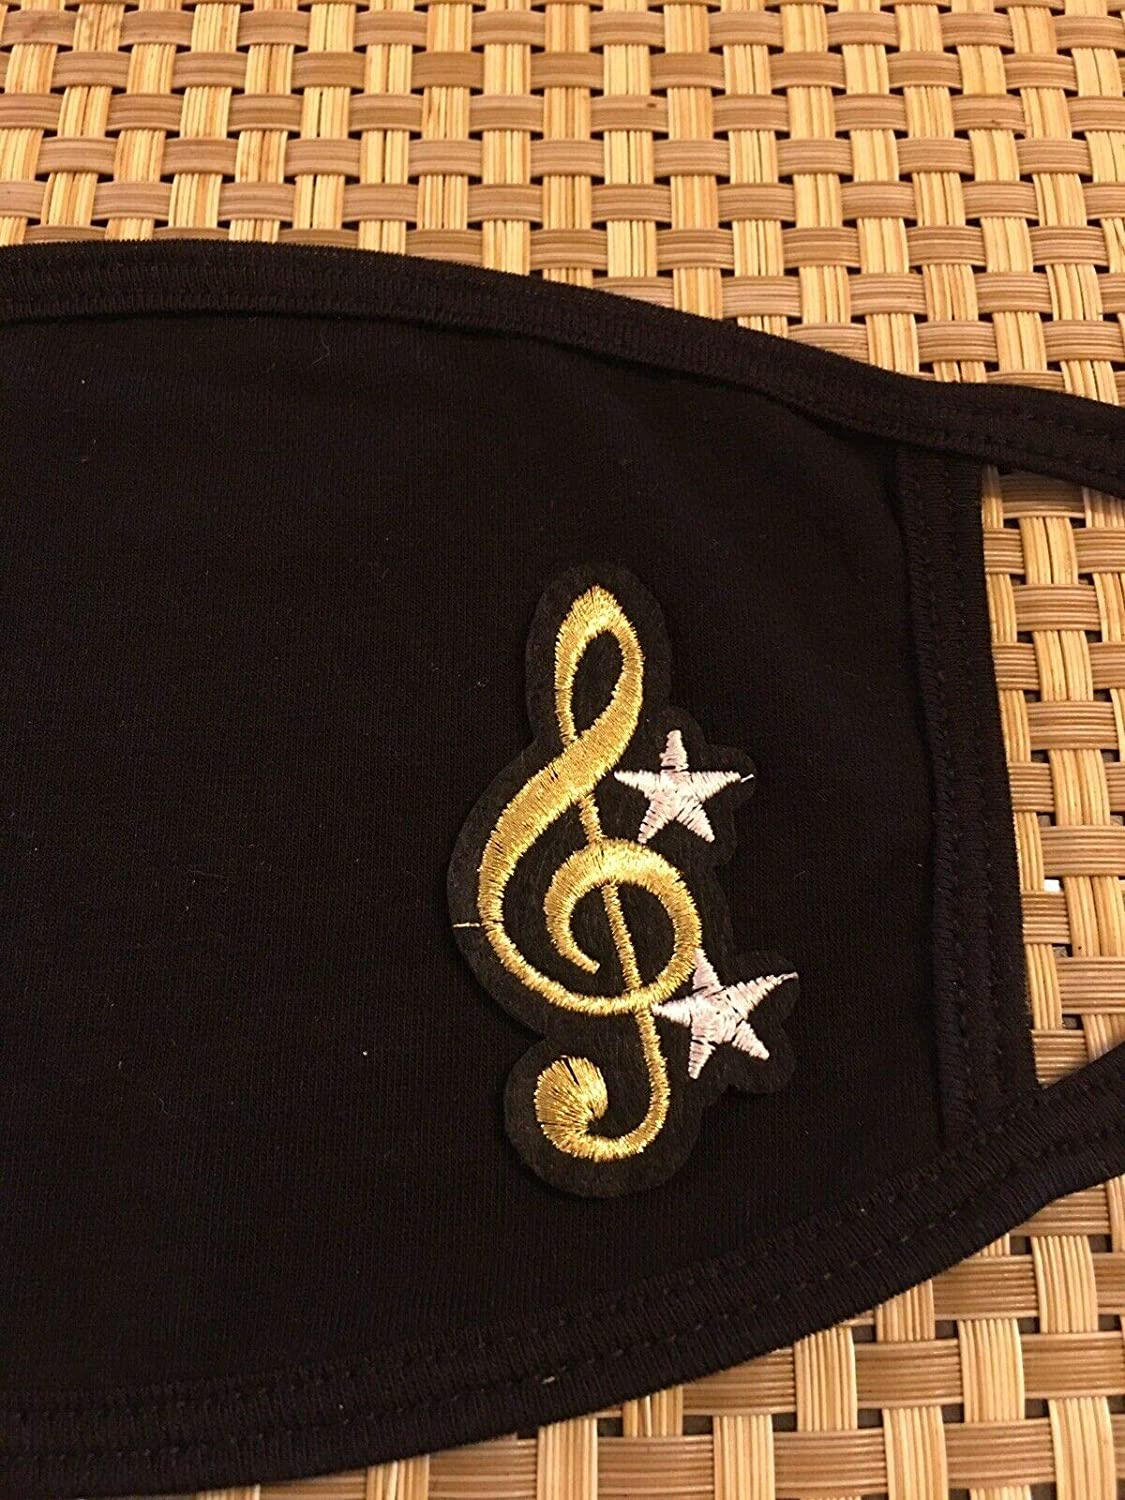 Treble Clef Music Gold Design Face Mask Cotton Blend Max 69% OFF Covers Popular